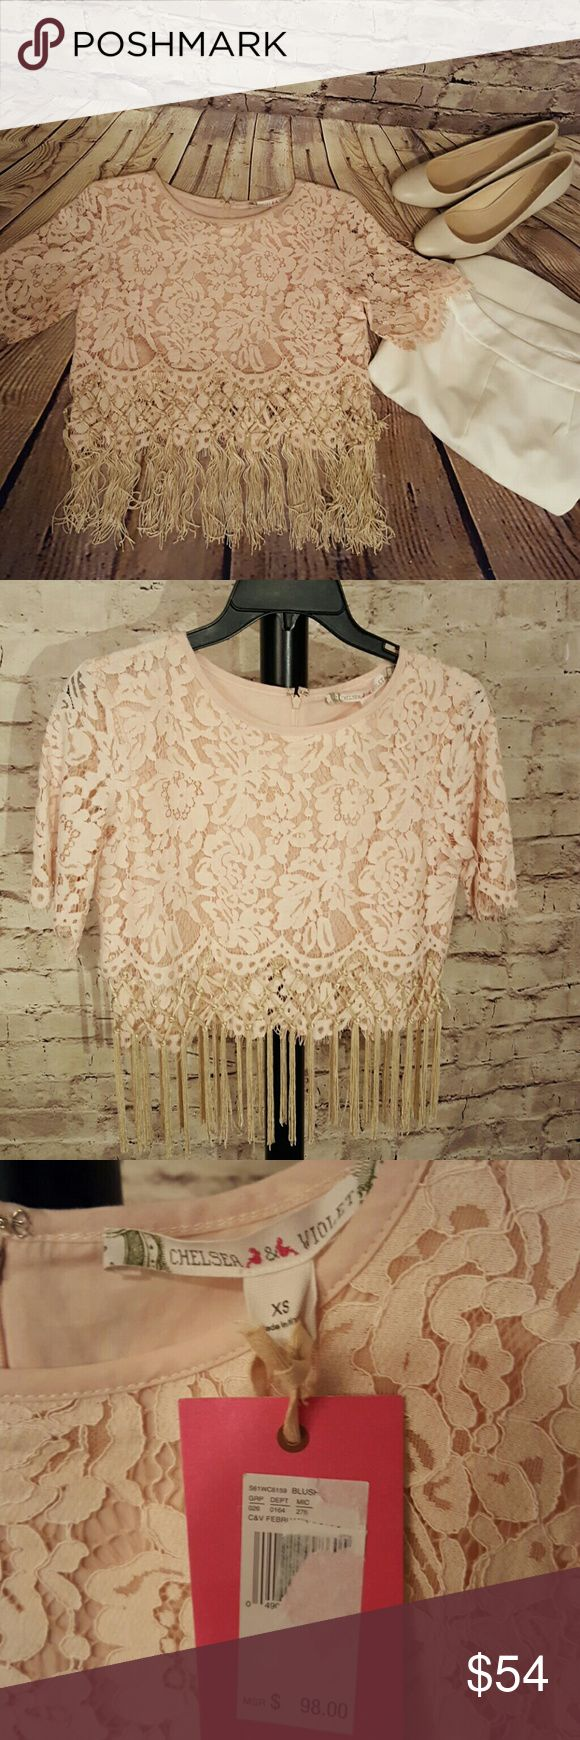 Chelsea & Violet fringe top size XS Blush lace over blush cotton lining. Hidden zipper in back Chelsea & Violet Tops Blouses